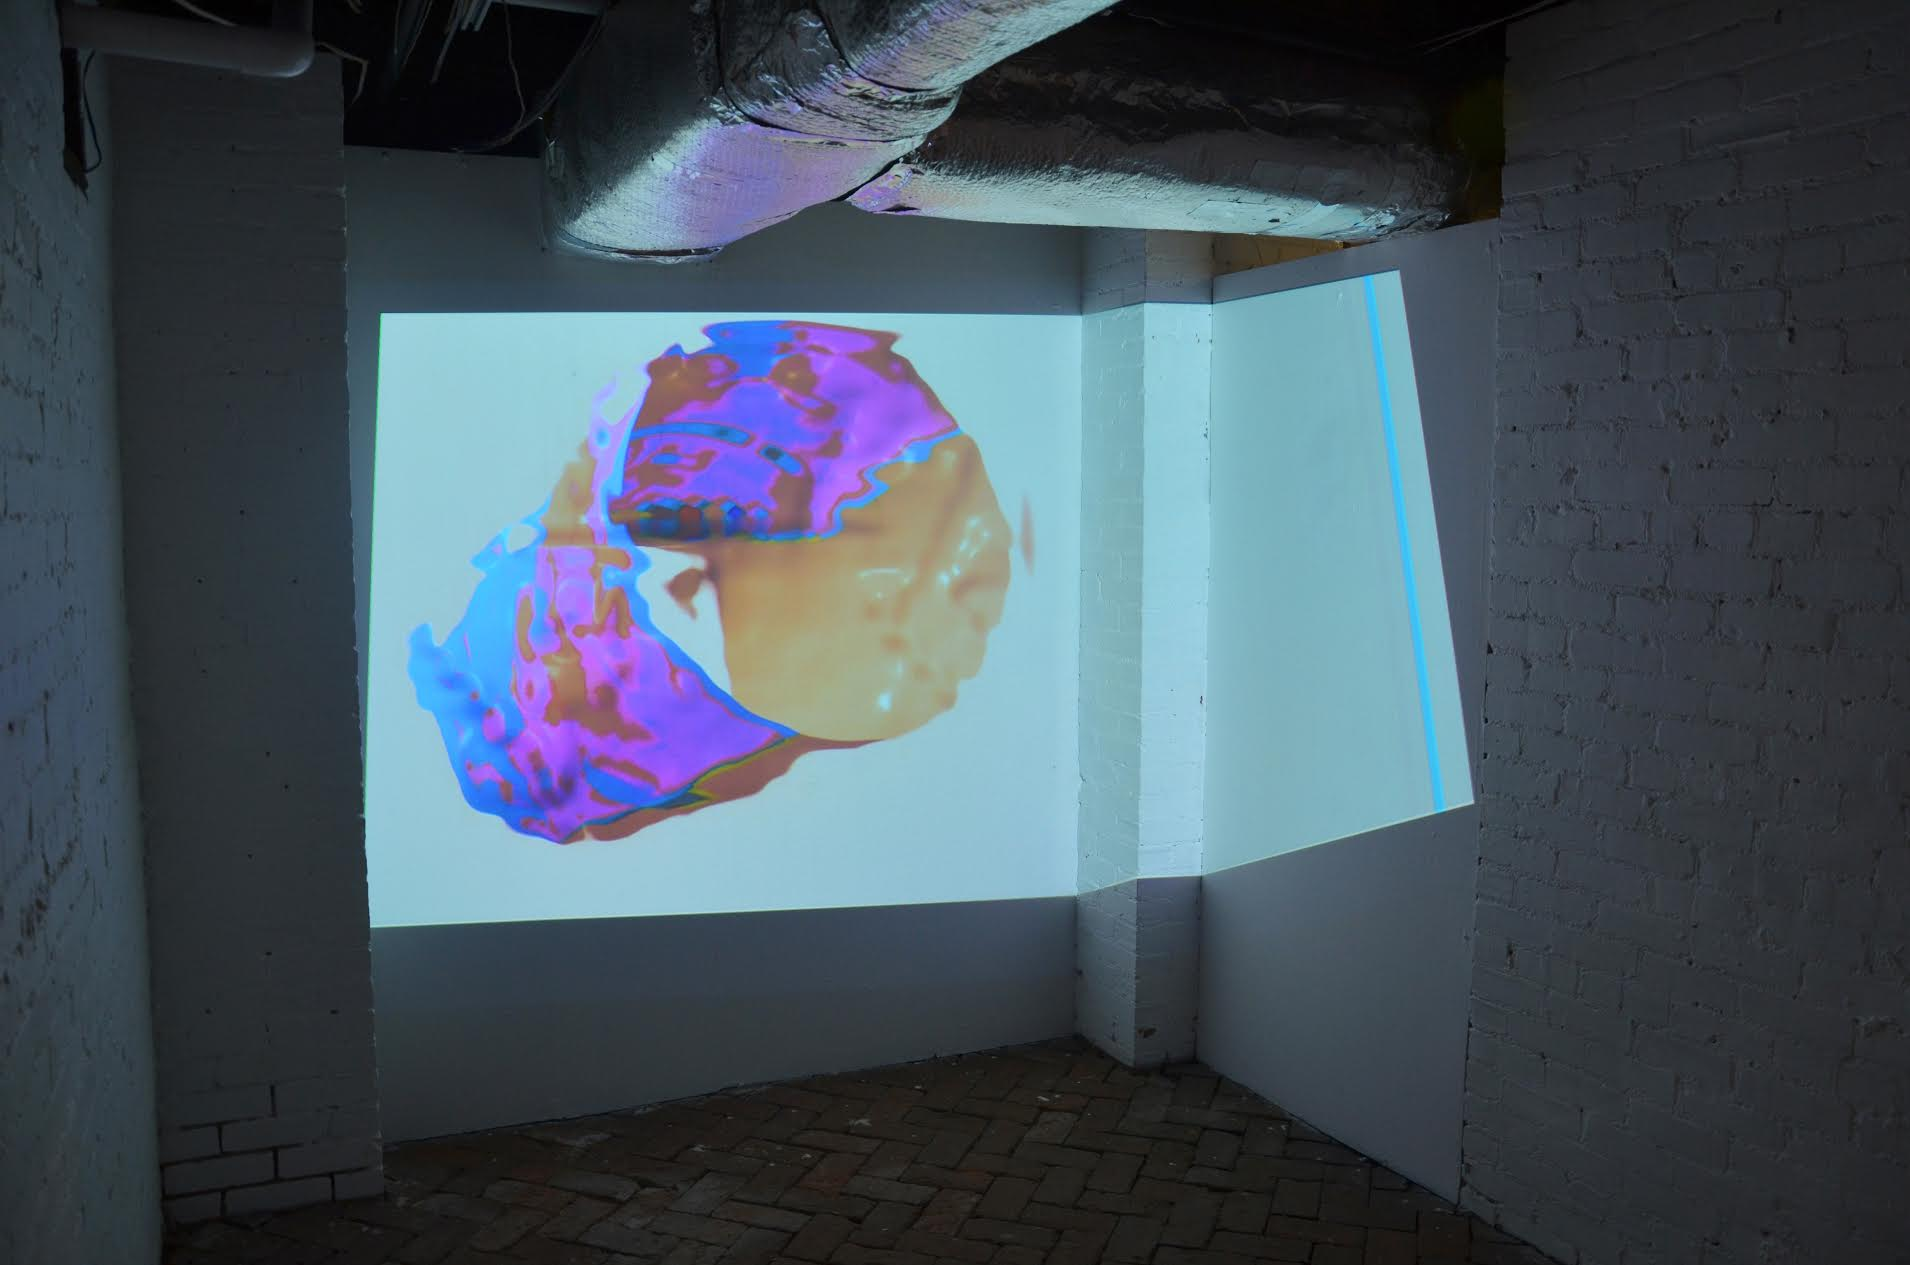 Bojana Ginn: Virtual T transplant, video projection in whitespec at whitespace gallery.